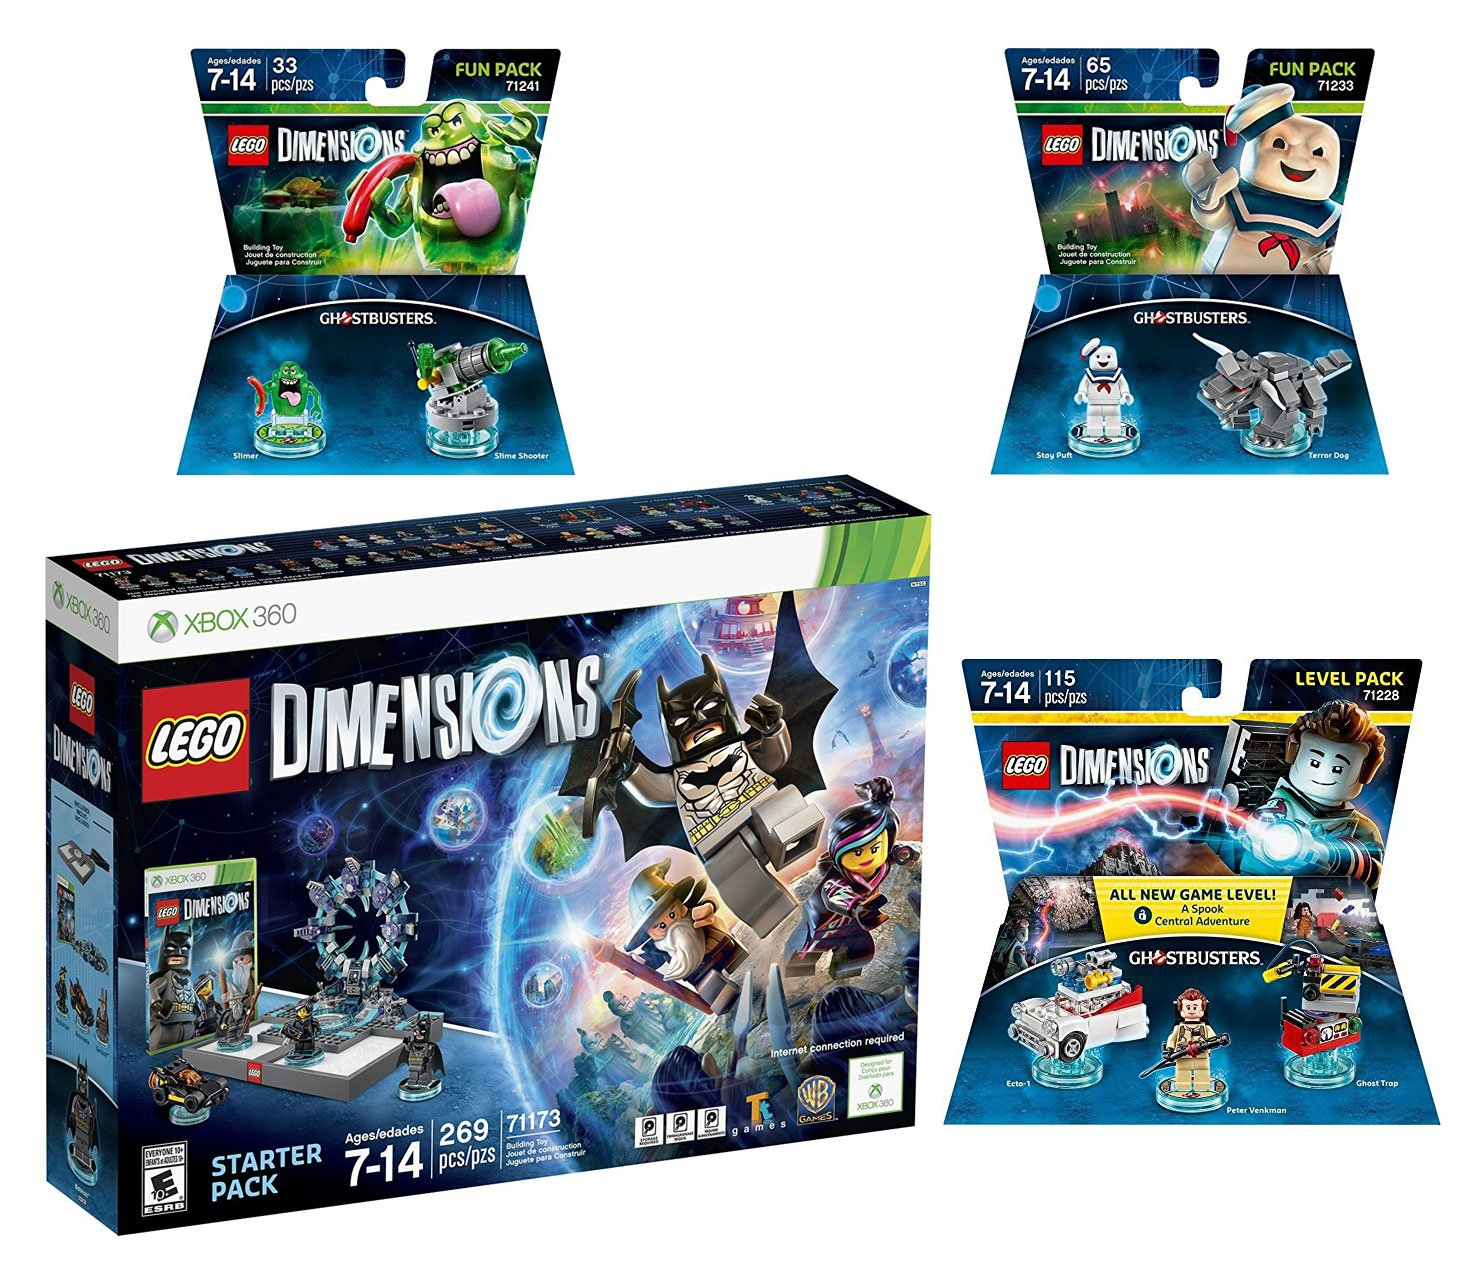 Lego Dimensions Ghostbusters Starter Pack + Peter Venkman Level Pack + Slimer + Stay Puft Fun Packs for Xbox 360 Console